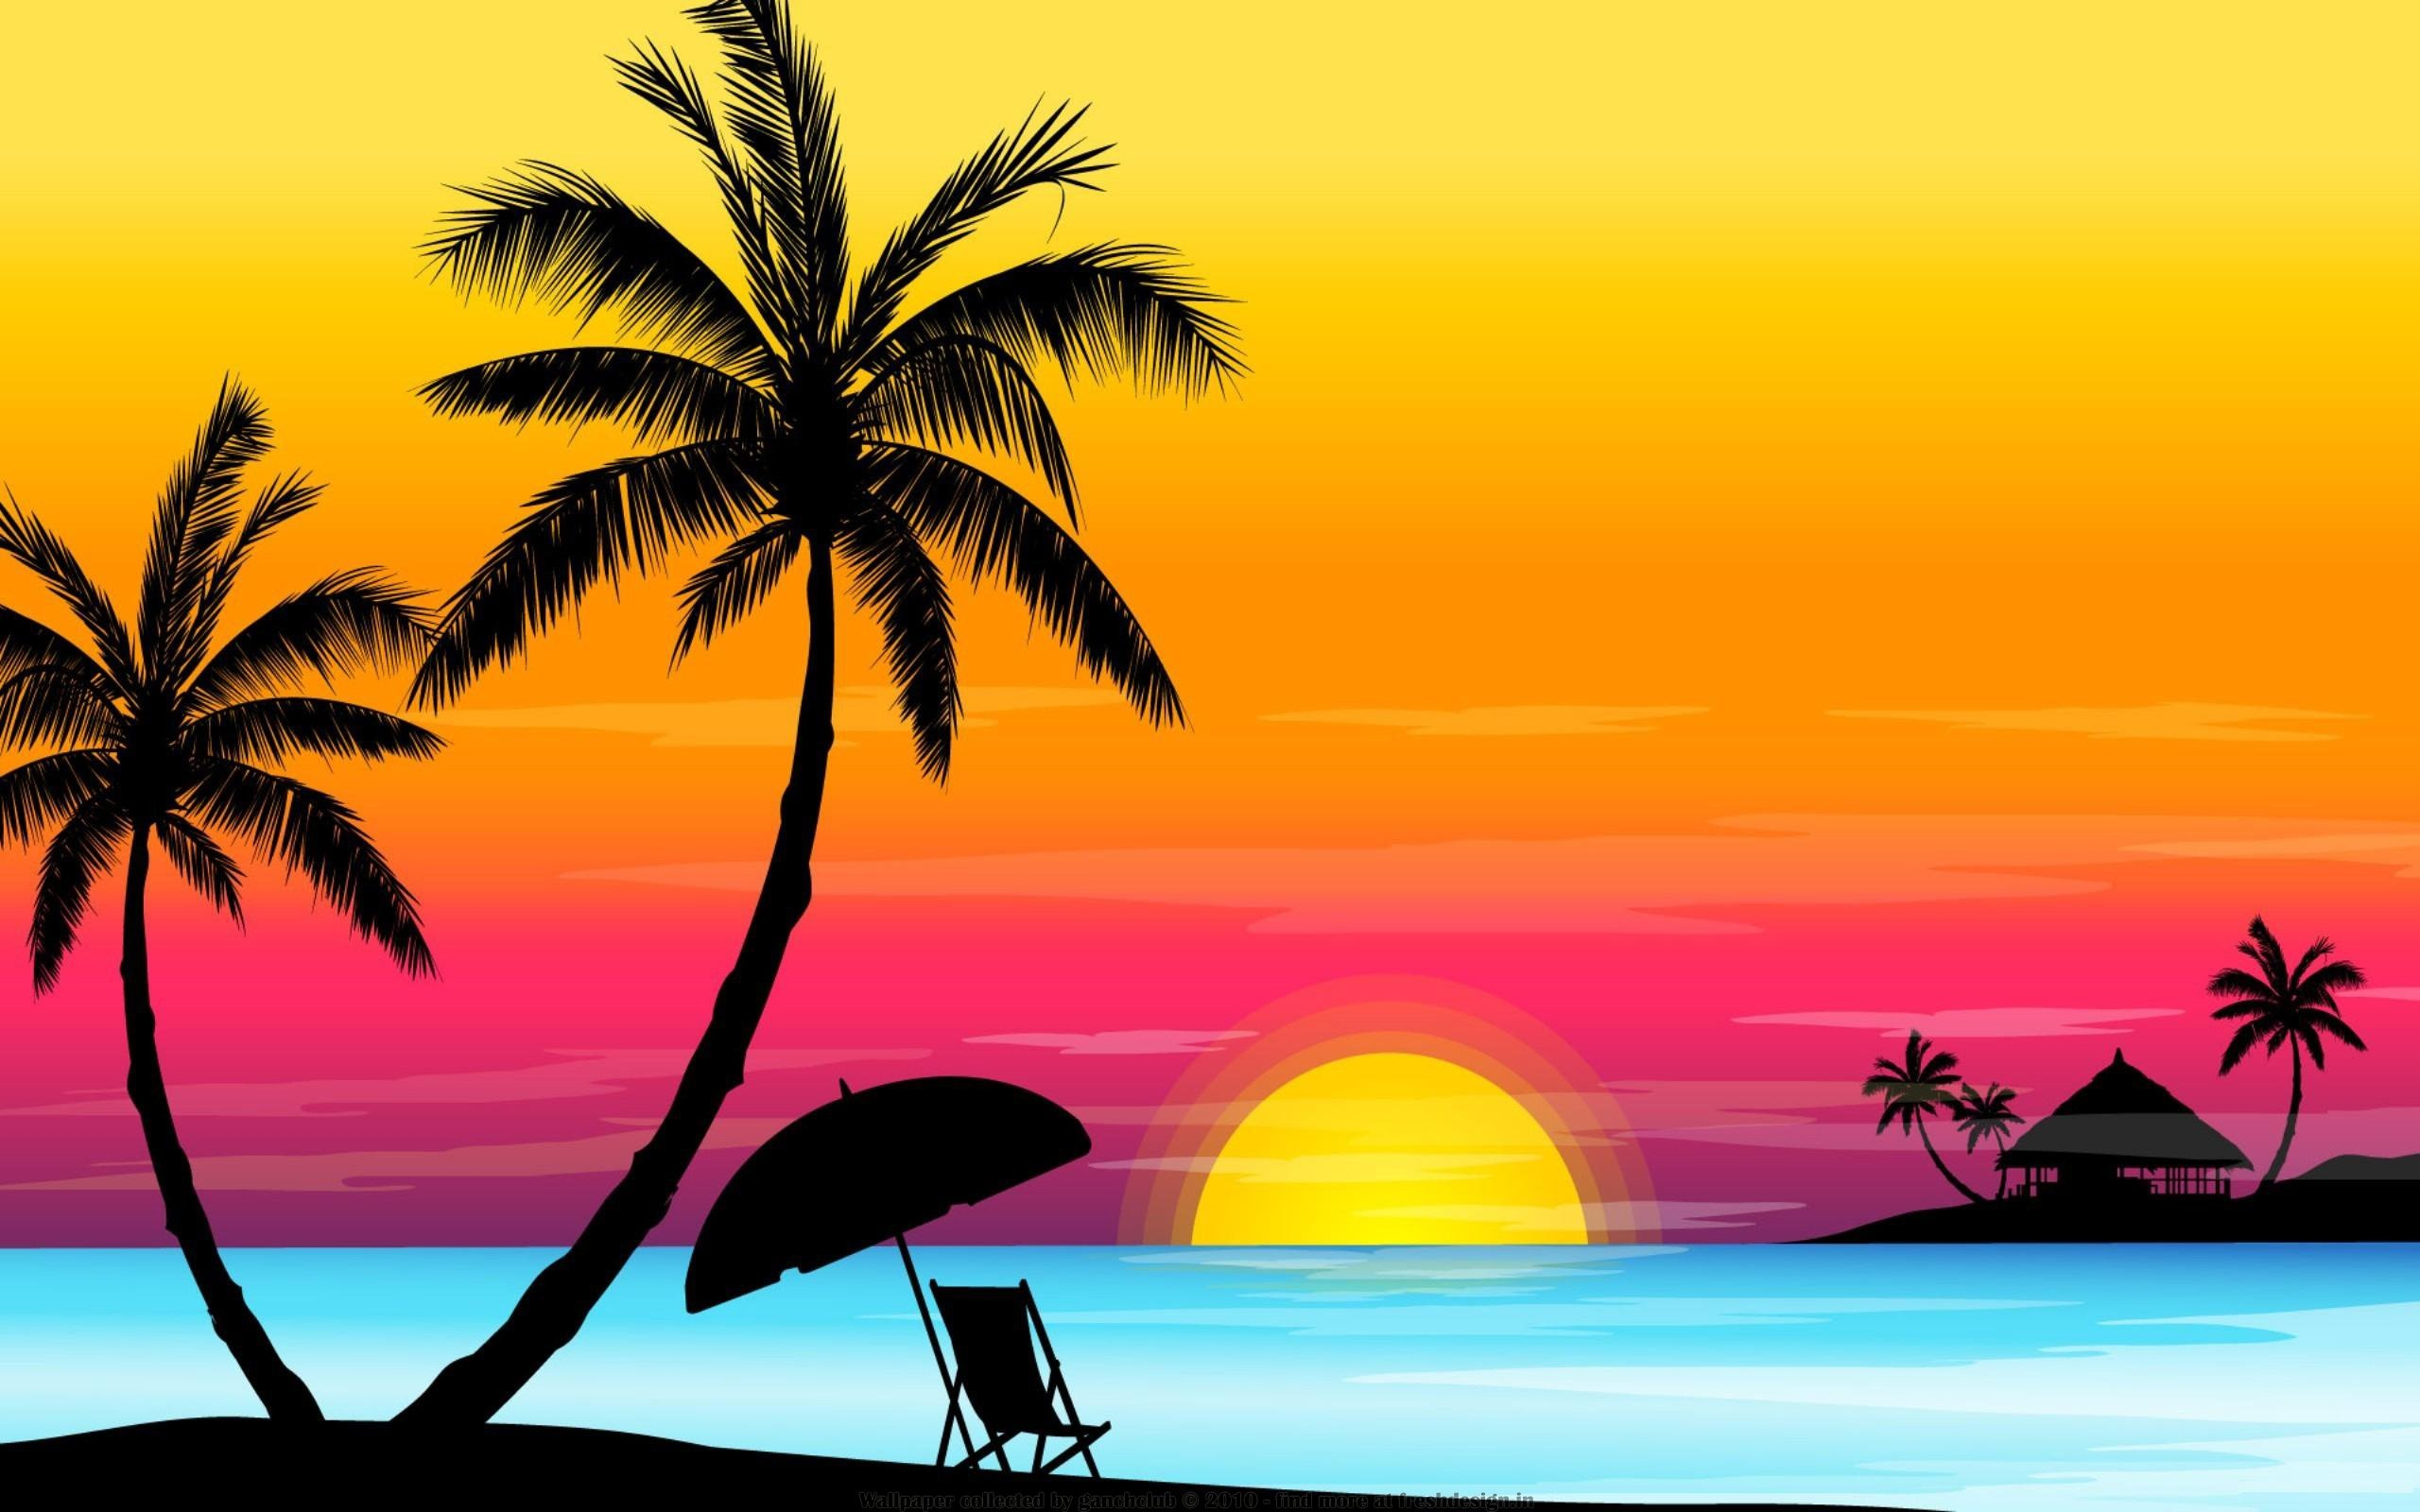 background vector wallpaper art - photo #43